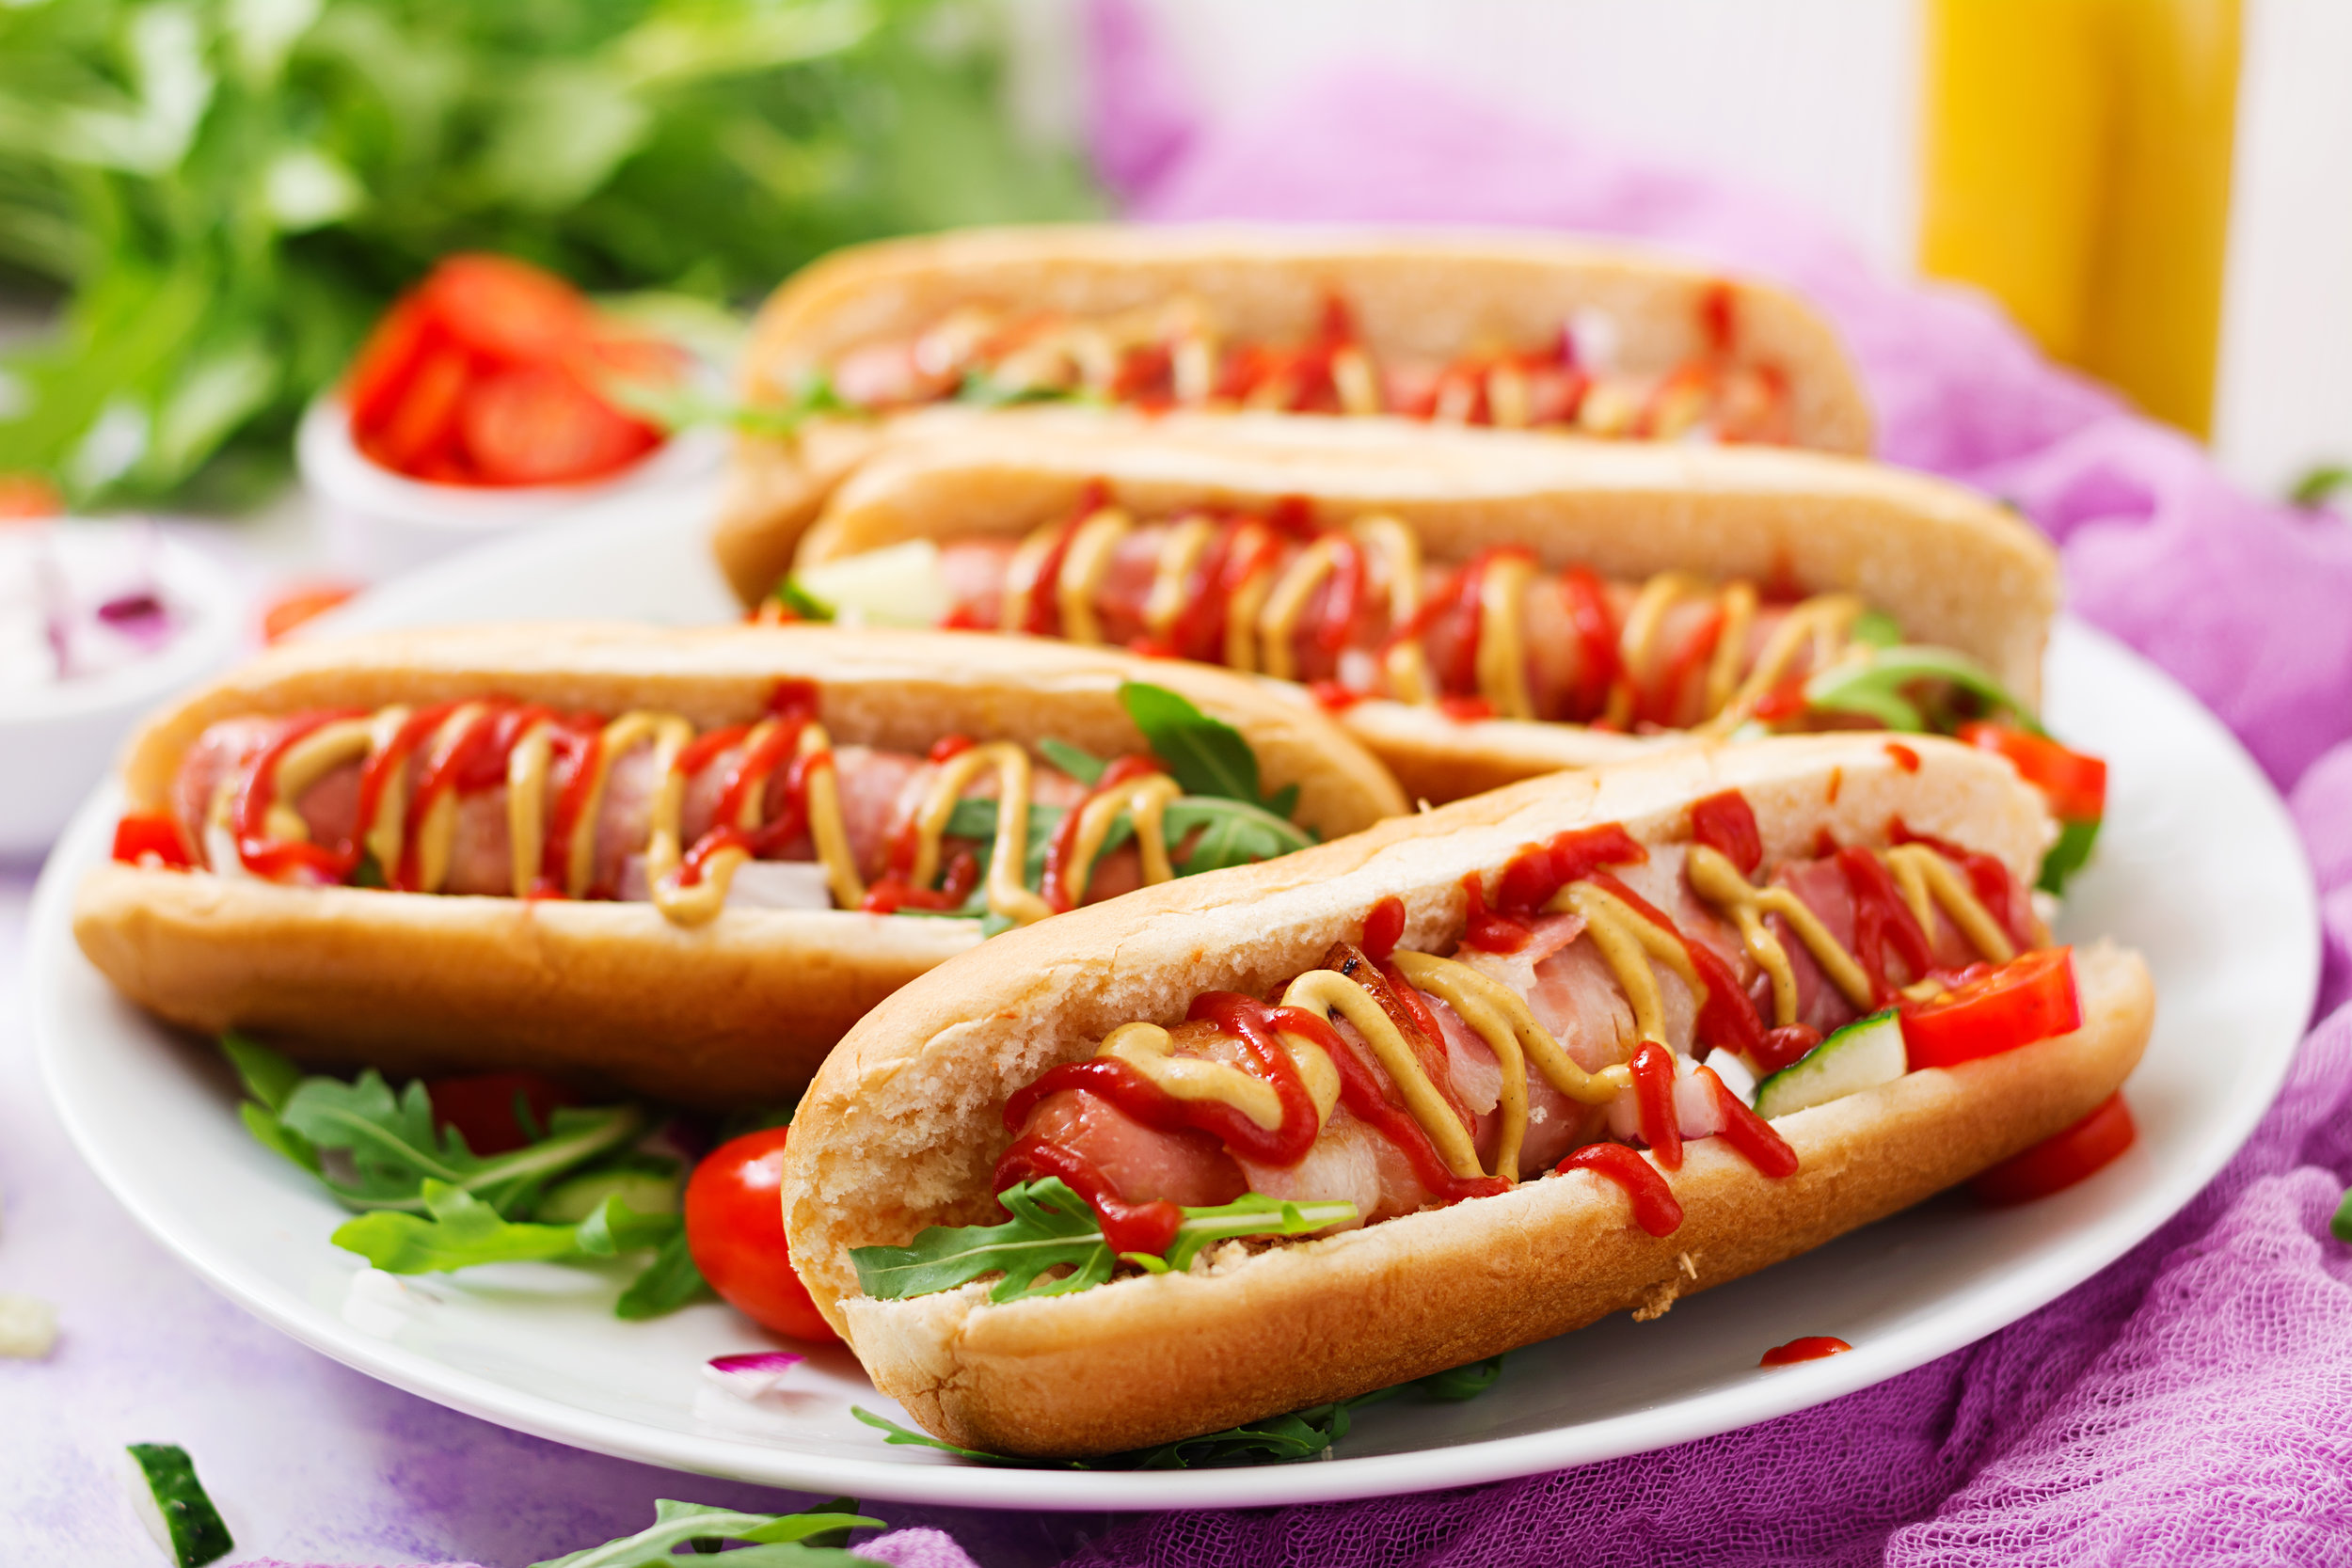 hot-dog-with-sausage-bacon-cucumber-tomato-and-PJXN7GR 2.jpg